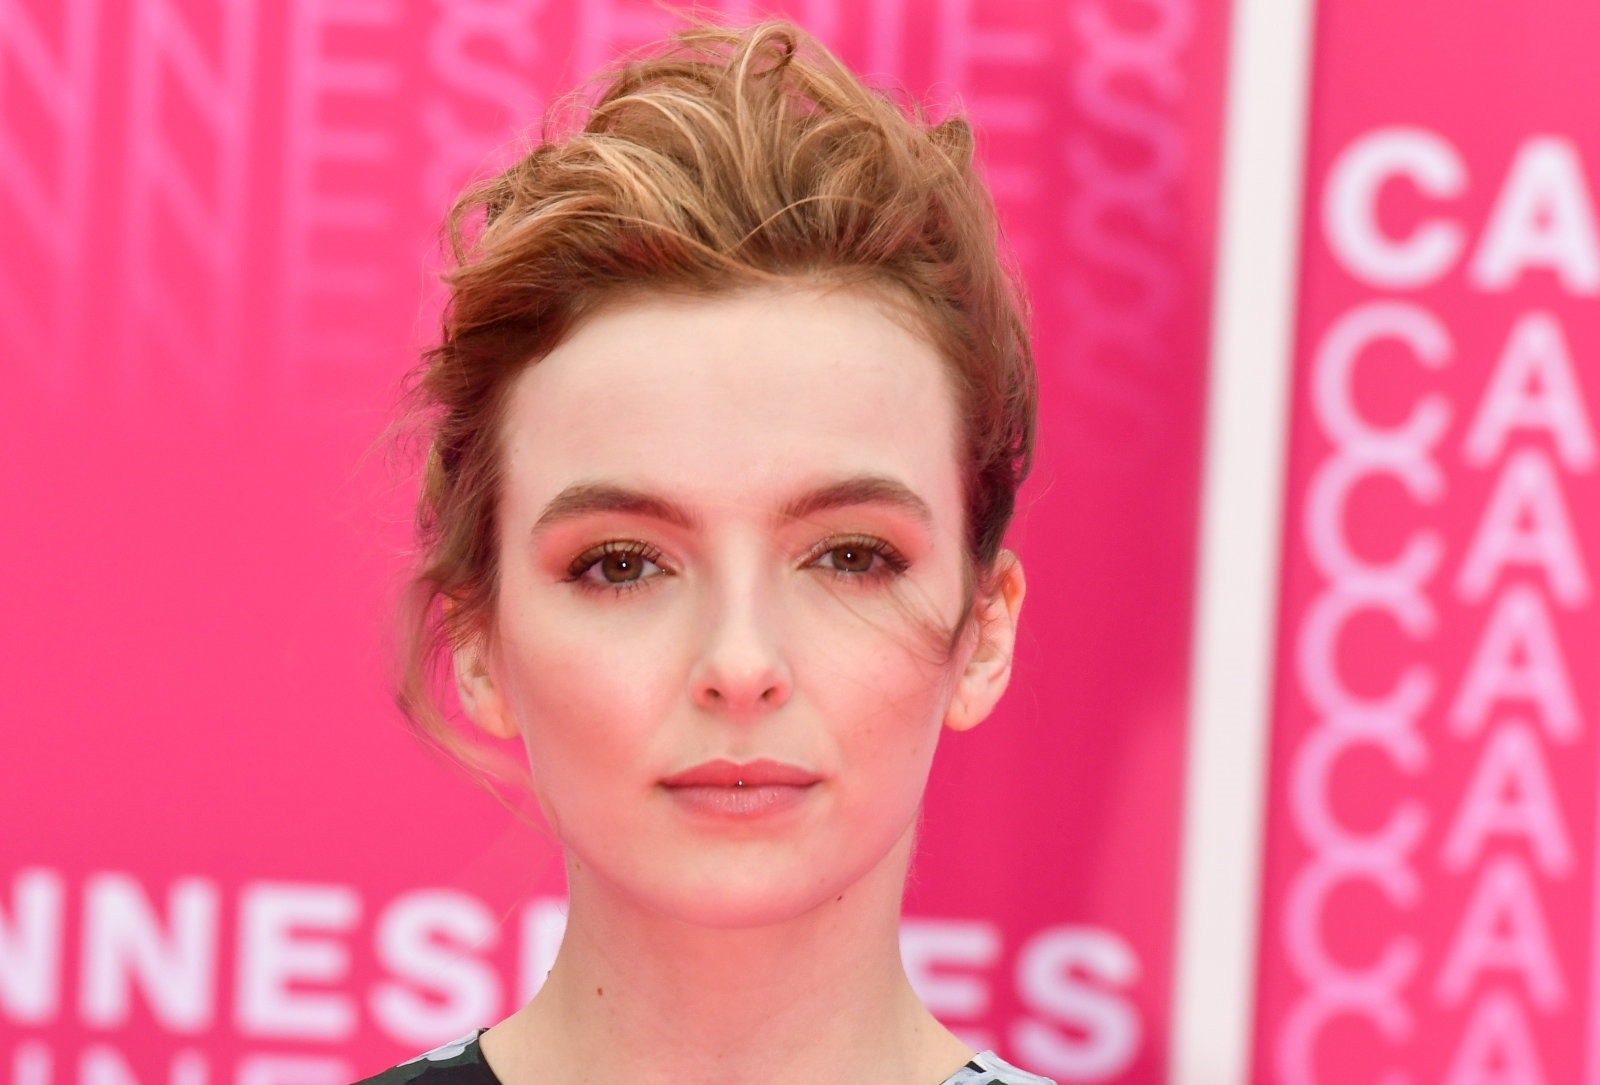 Video game movie 'Free Guy' signs Jodie Comer, Lil Rel and Joe Keery | DeviceDaily.com